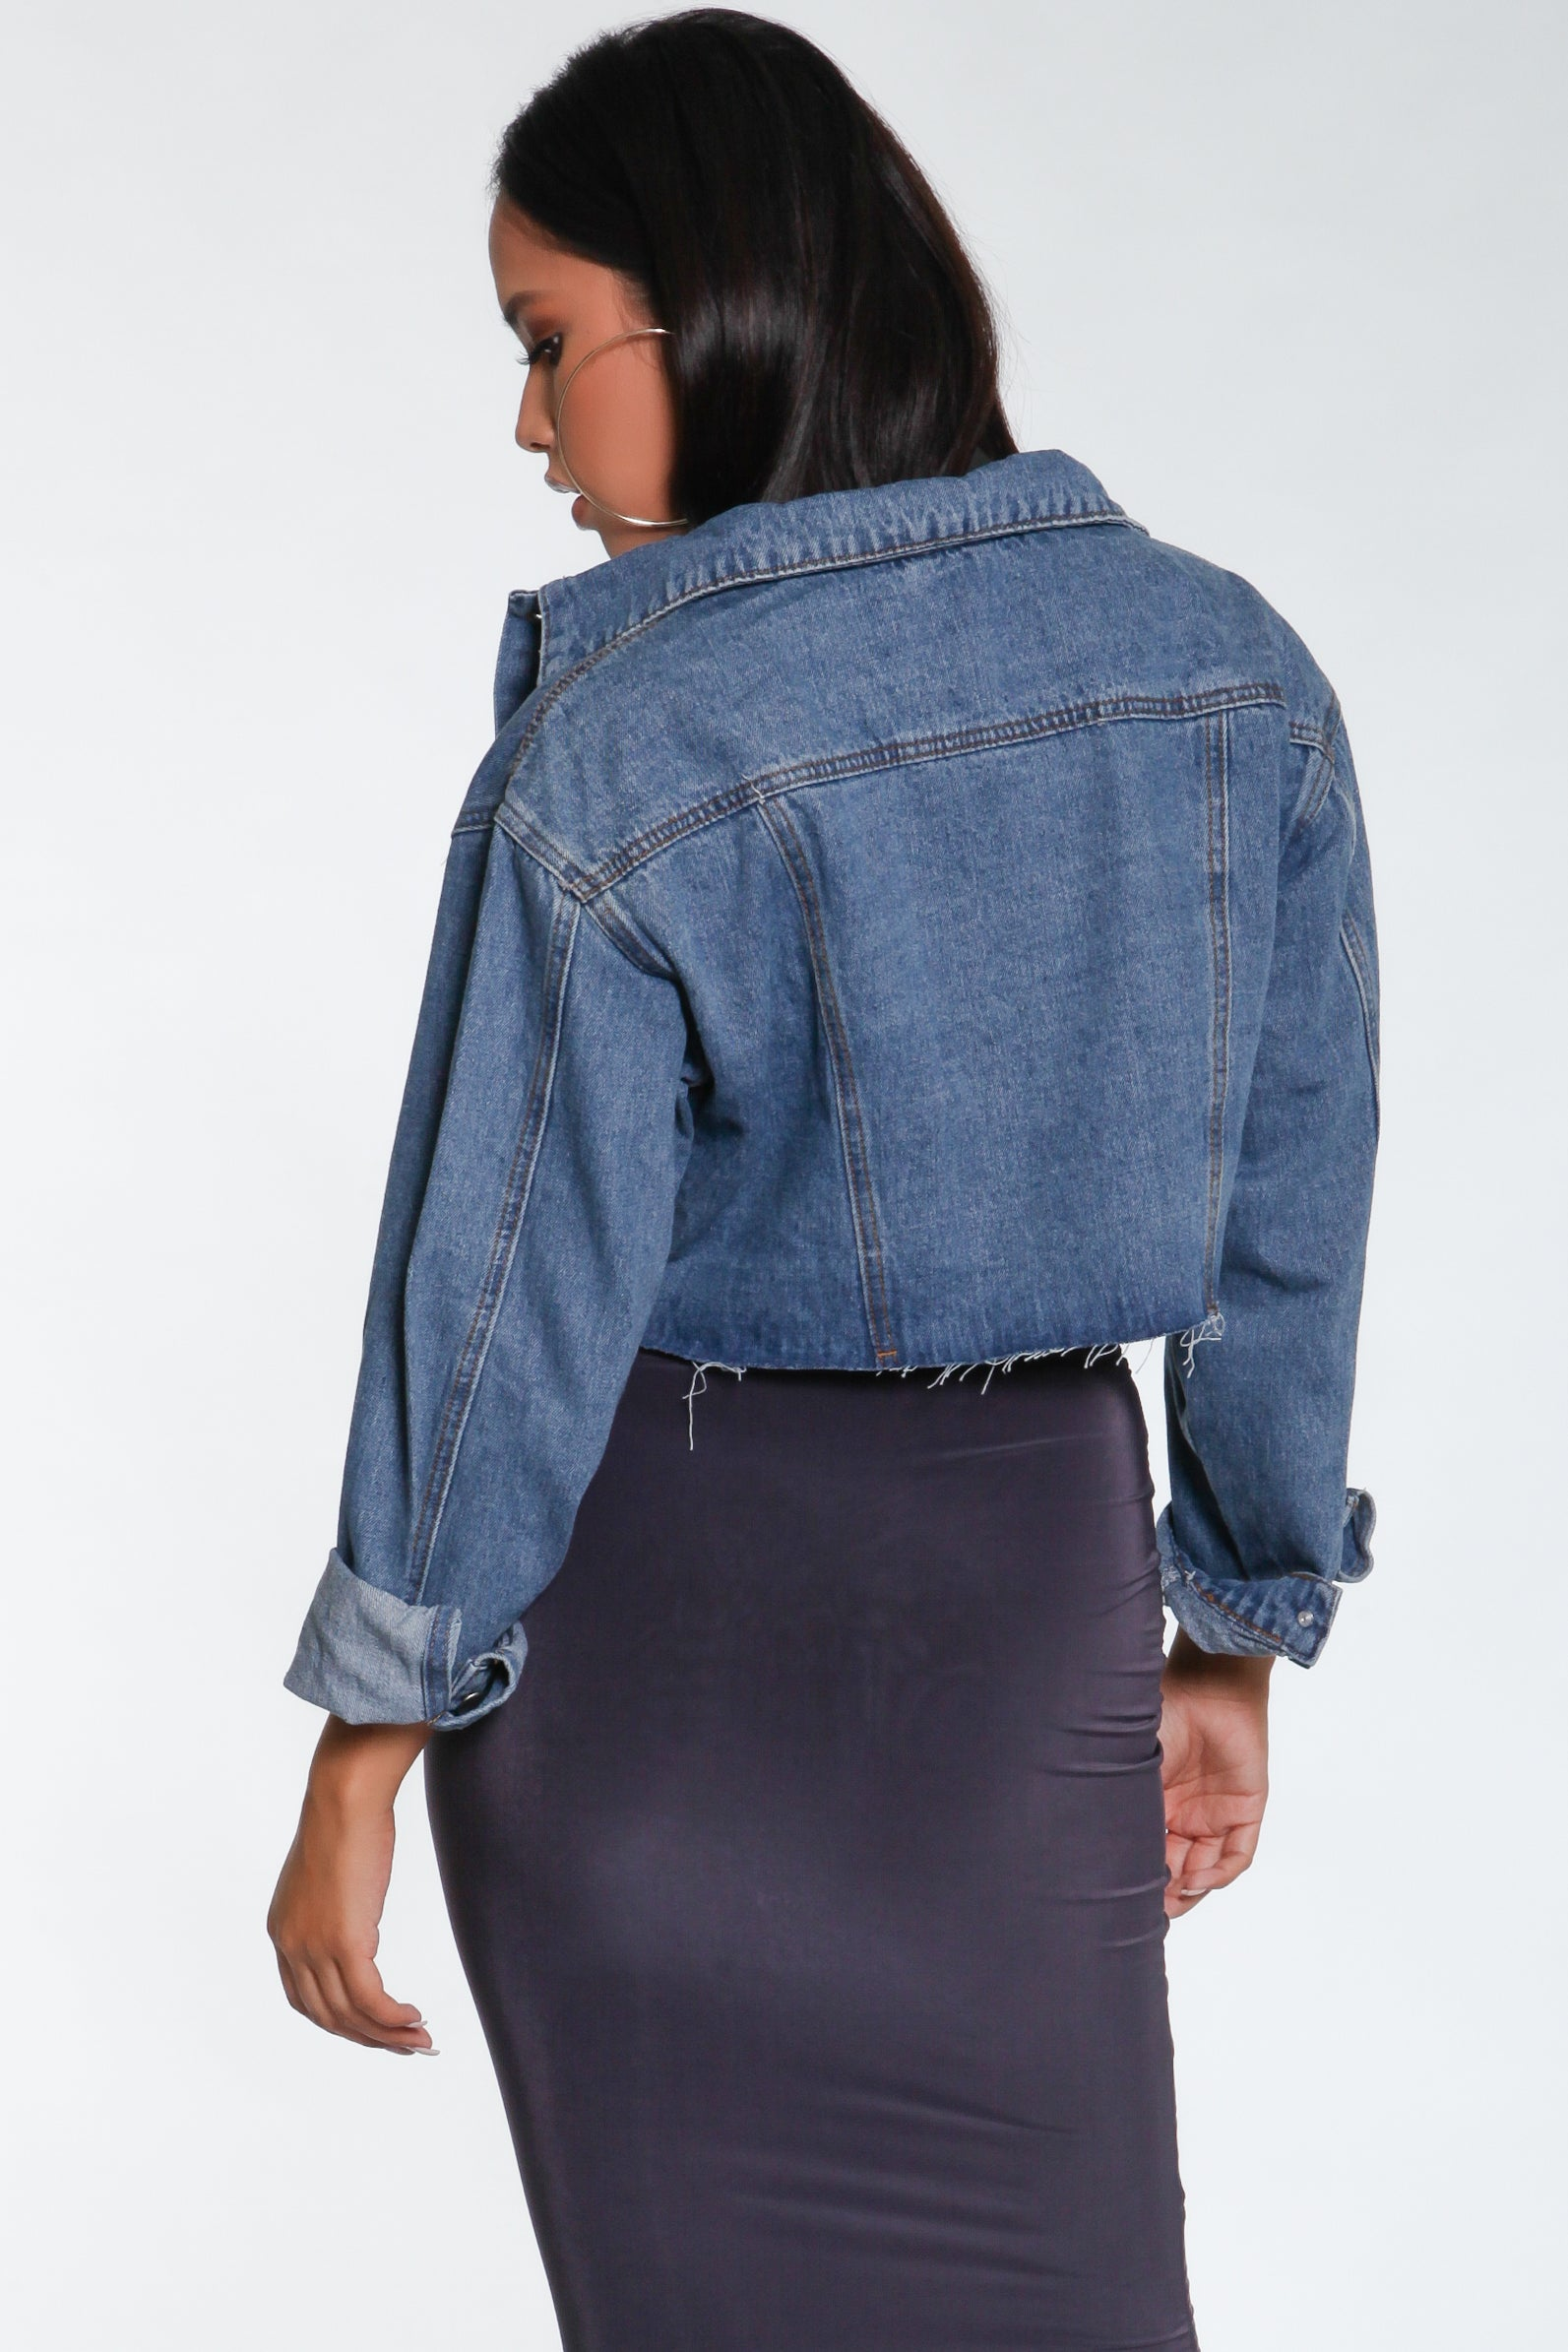 Heartbreaker Frayed Denim Jacket